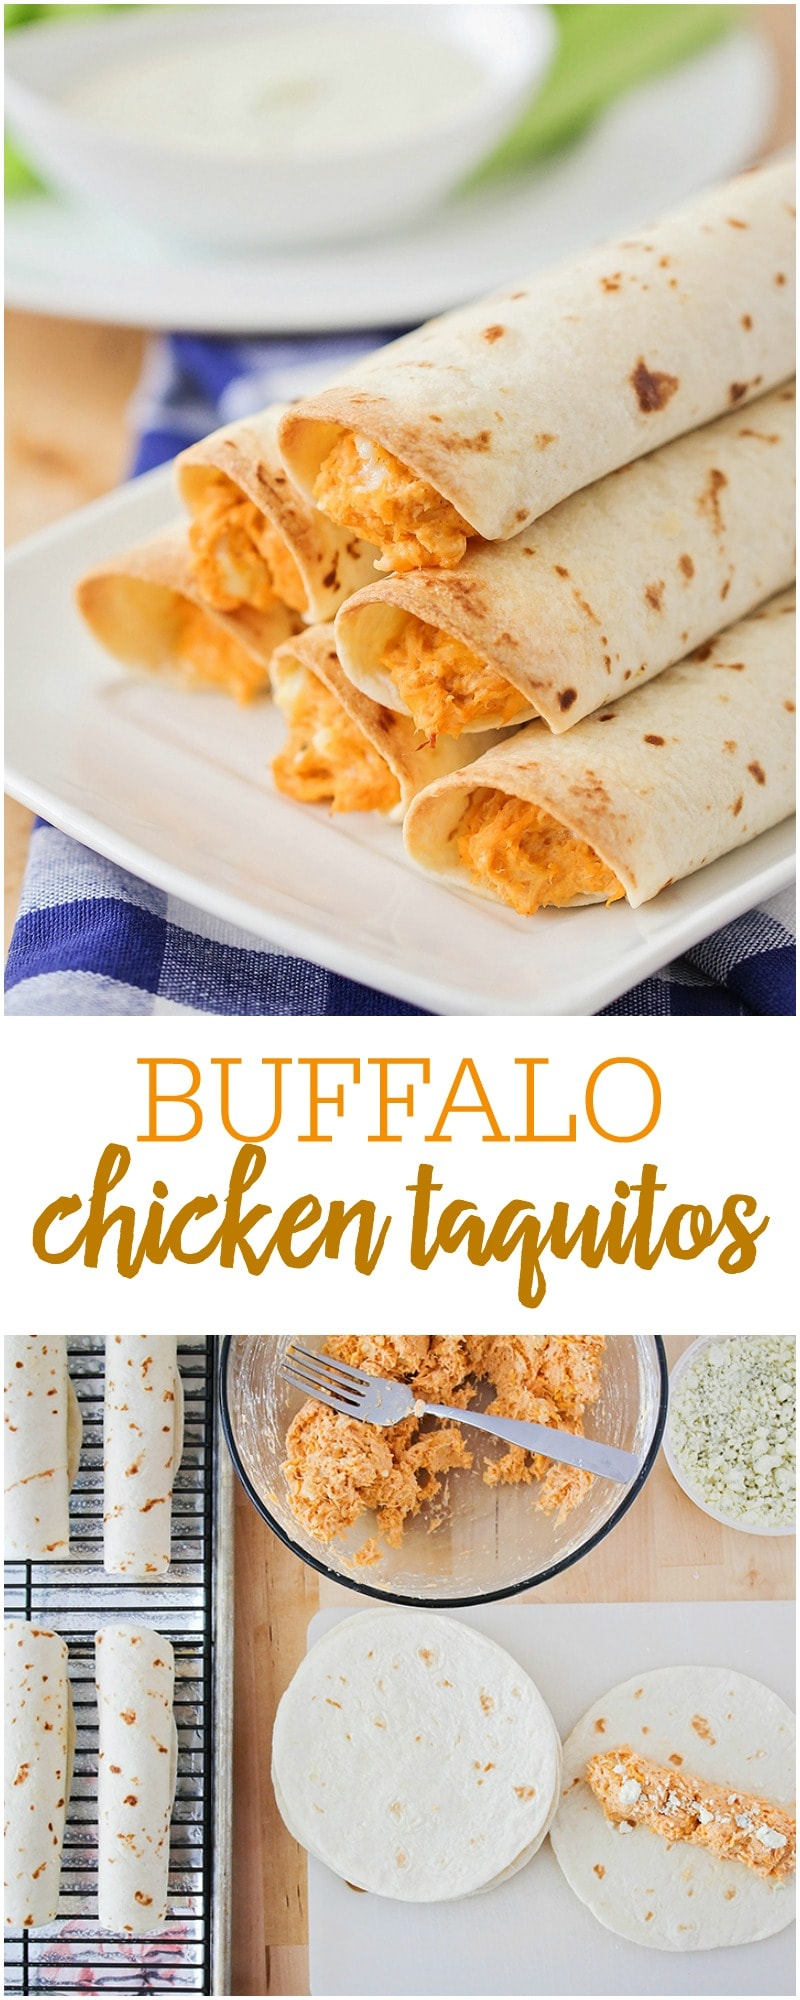 Simple and delicious Buffalo Chicken Taquitos - great for dinner or served as an appetizer.